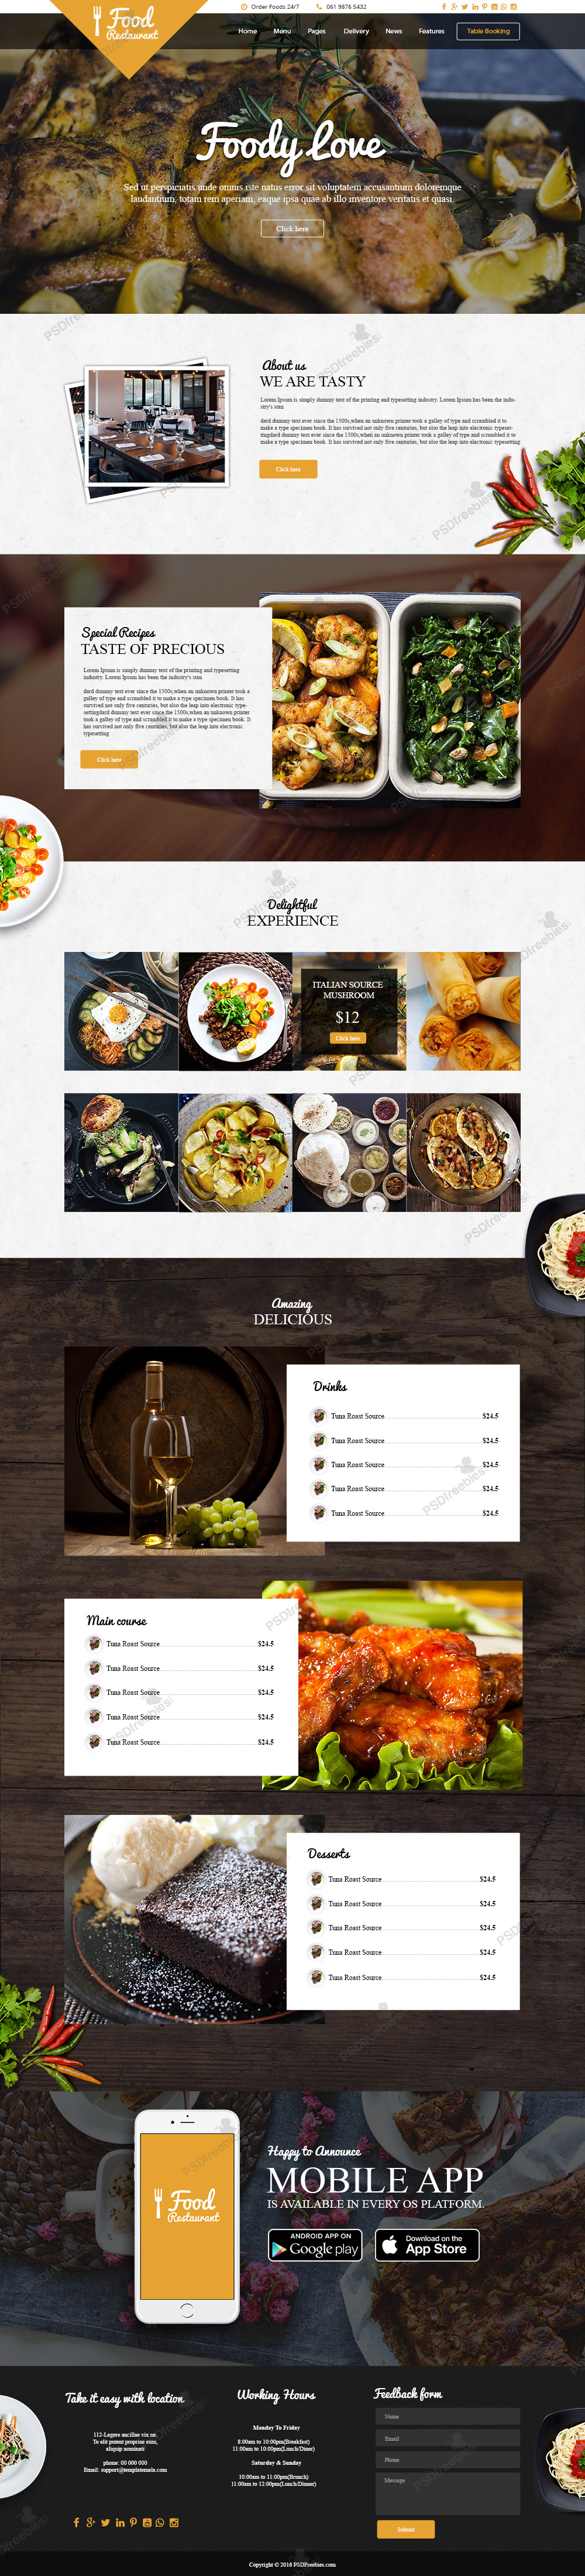 Food And Restaurant Website Free Psd Template Psdfreebies